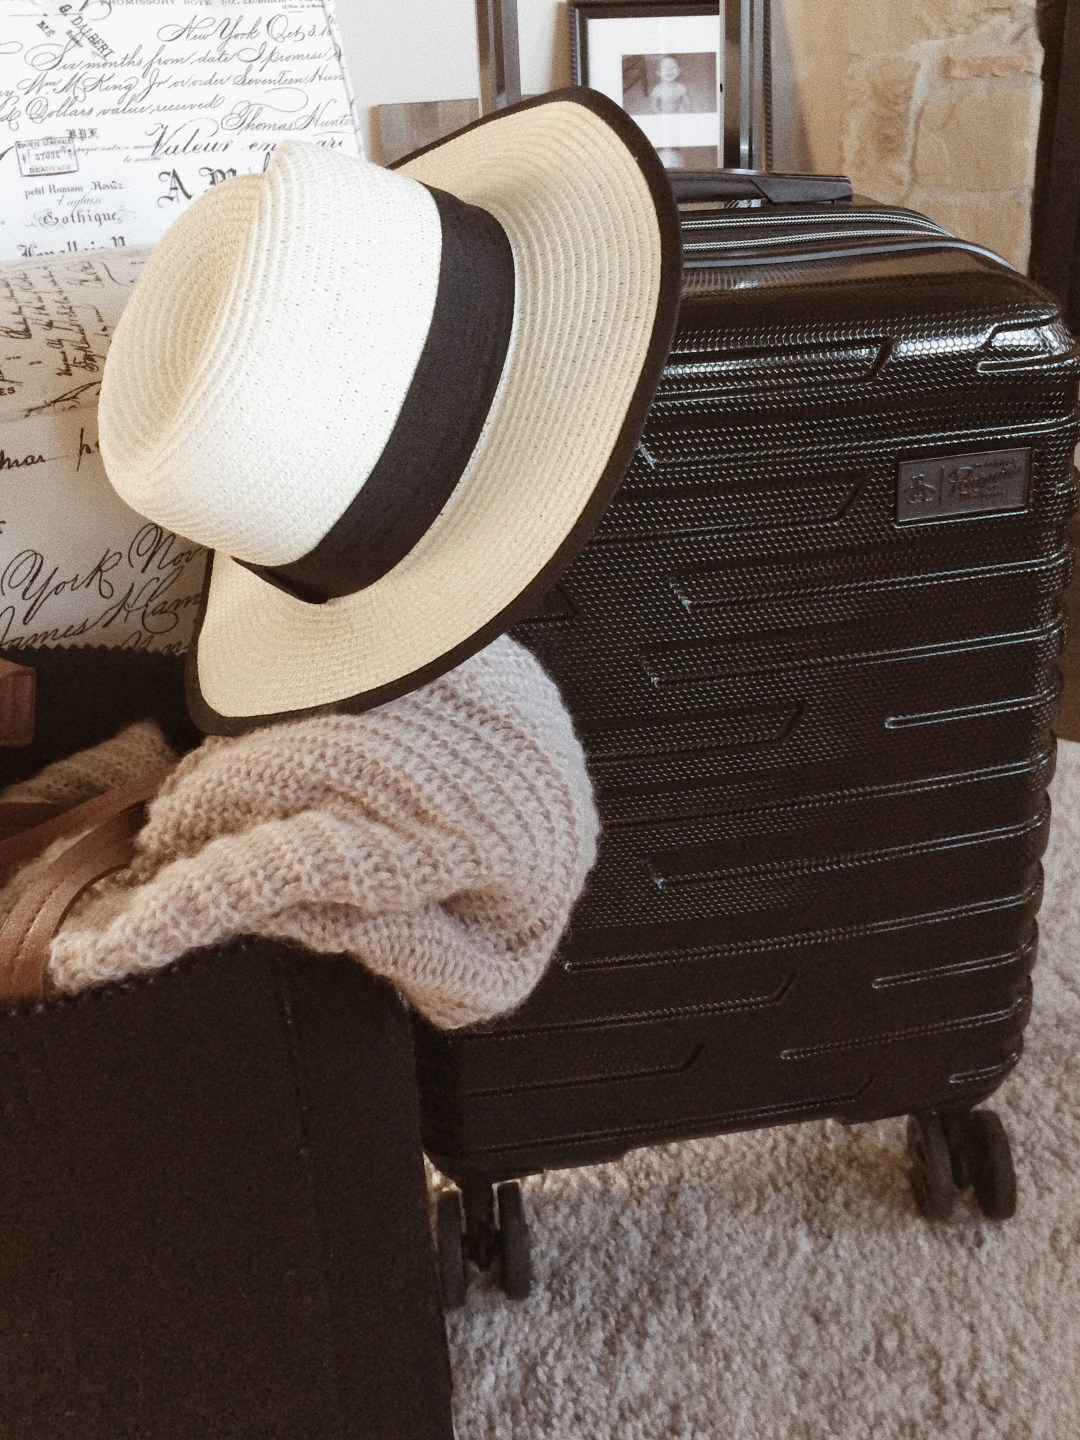 luggage, penguin luggage, straw hat, cardigan, tote bag, packing essentials